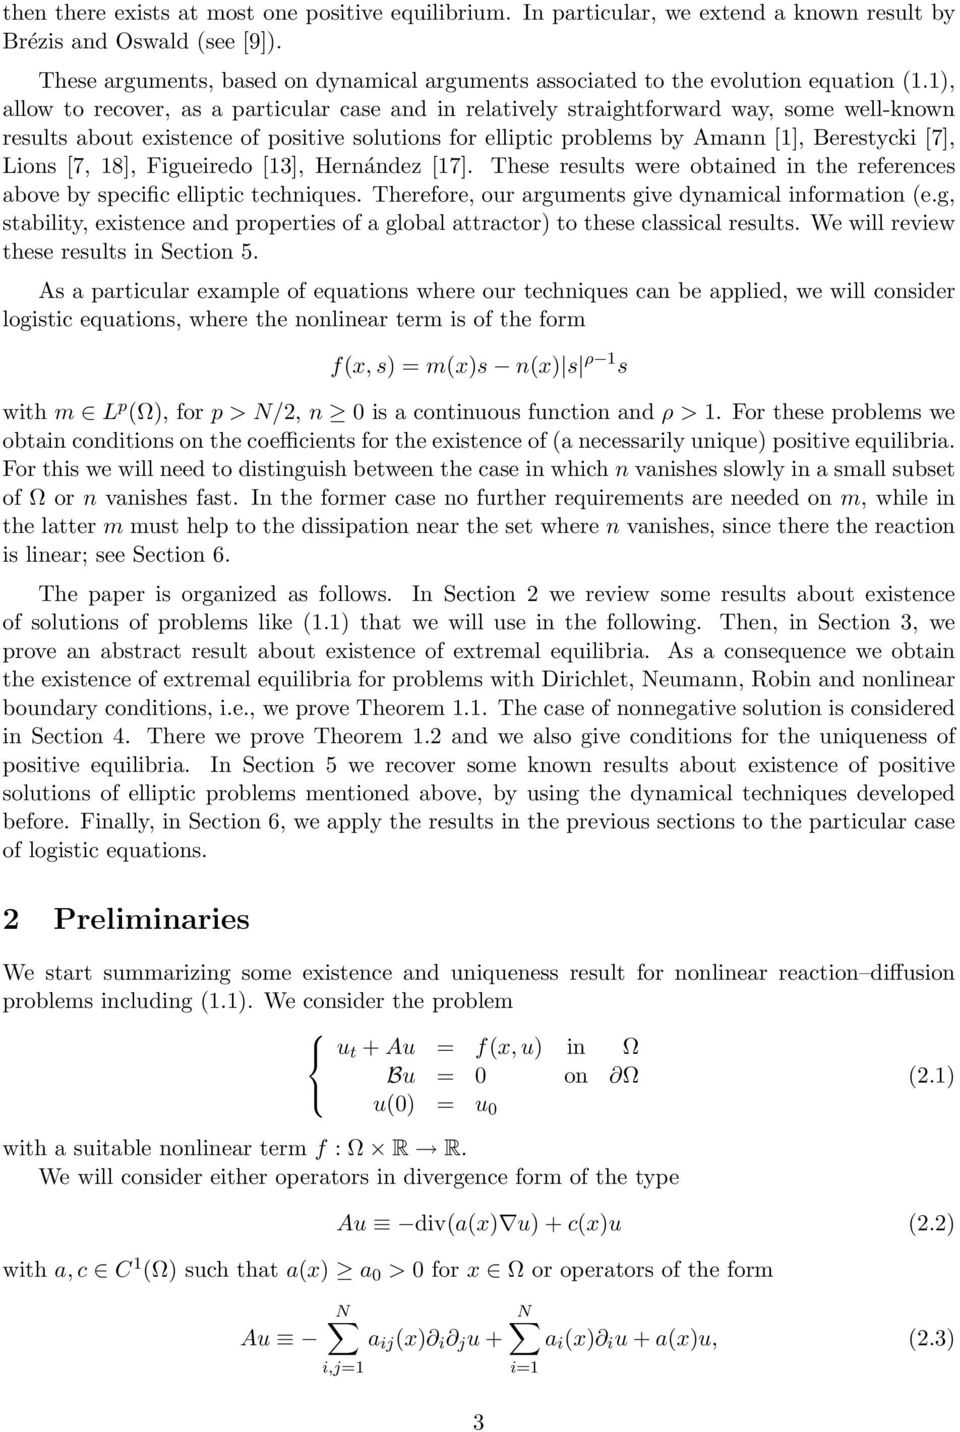 1), allow to recover, as a particular case and in relatively straightforward way, some well-known results about existence of positive solutions for elliptic problems by Amann [1], Berestycki [7],